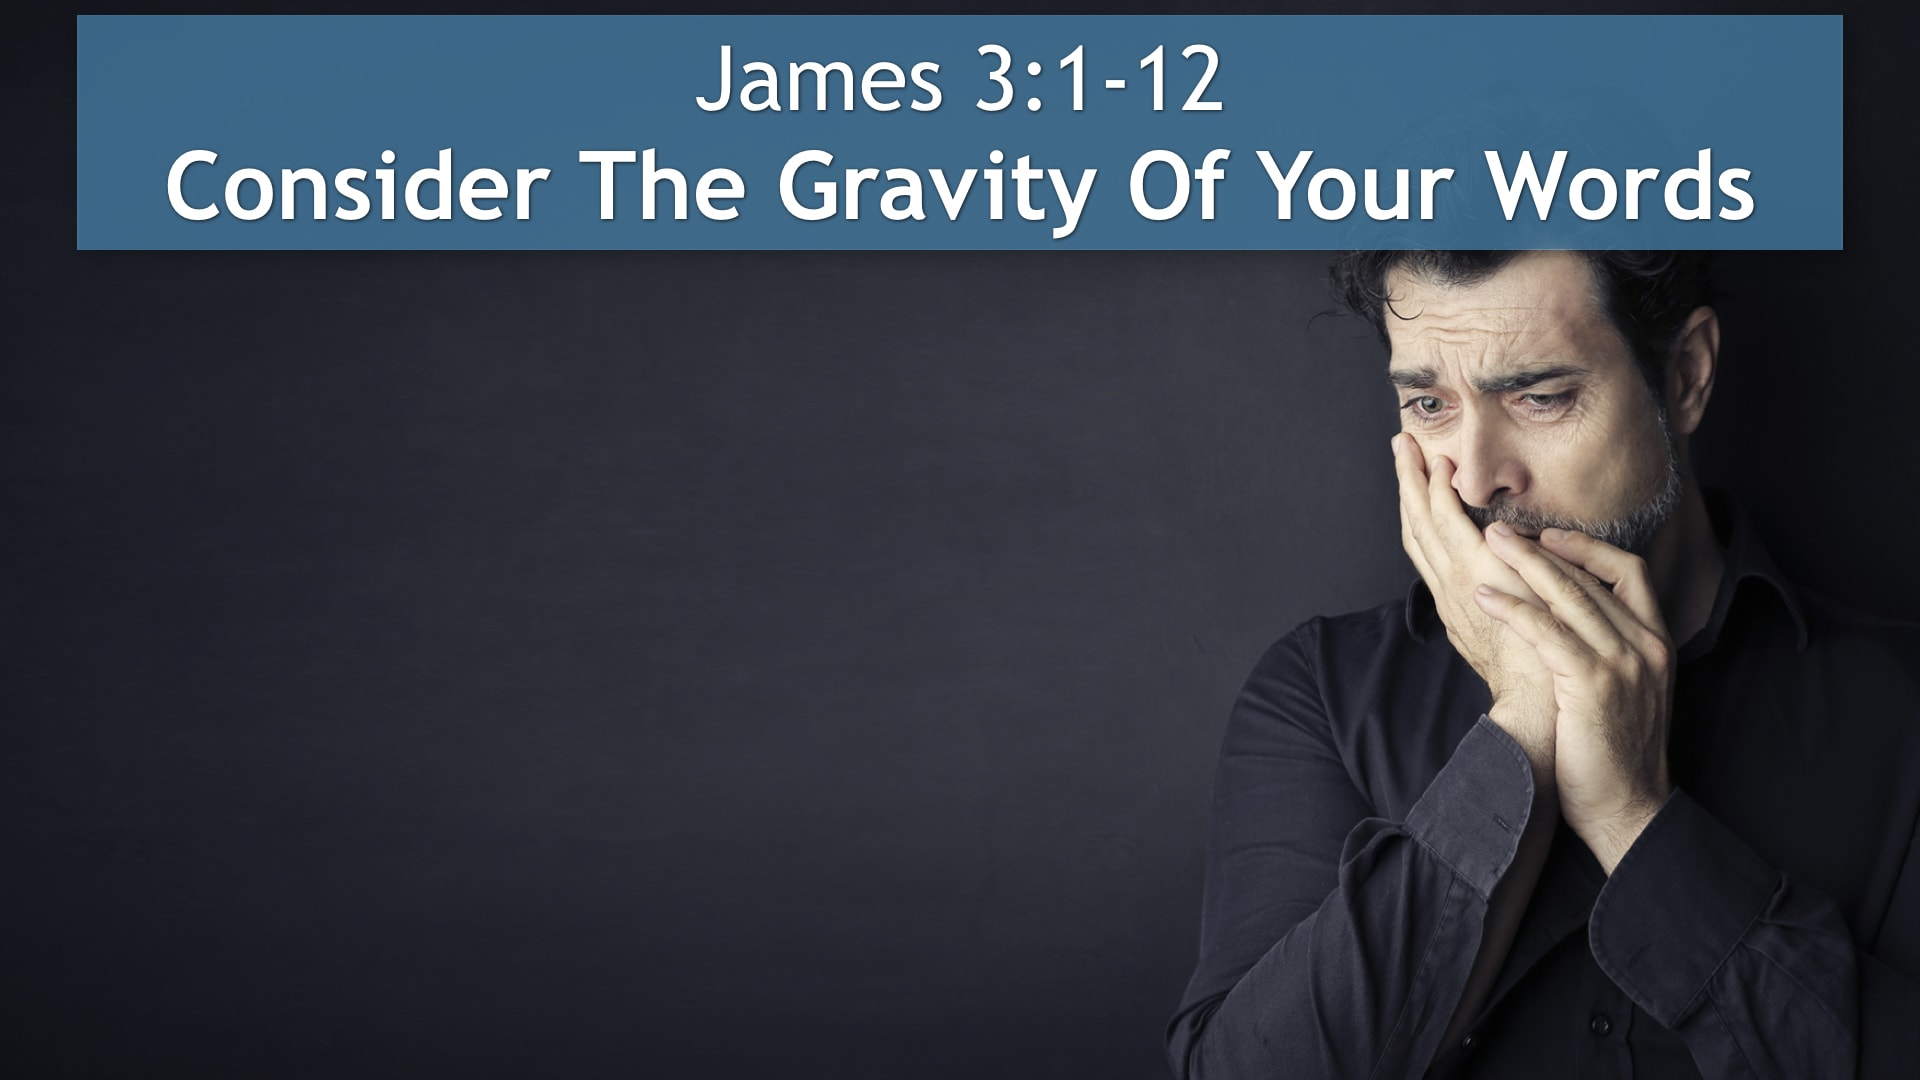 James 3:1-12, Consider The Gravity Of Your Words